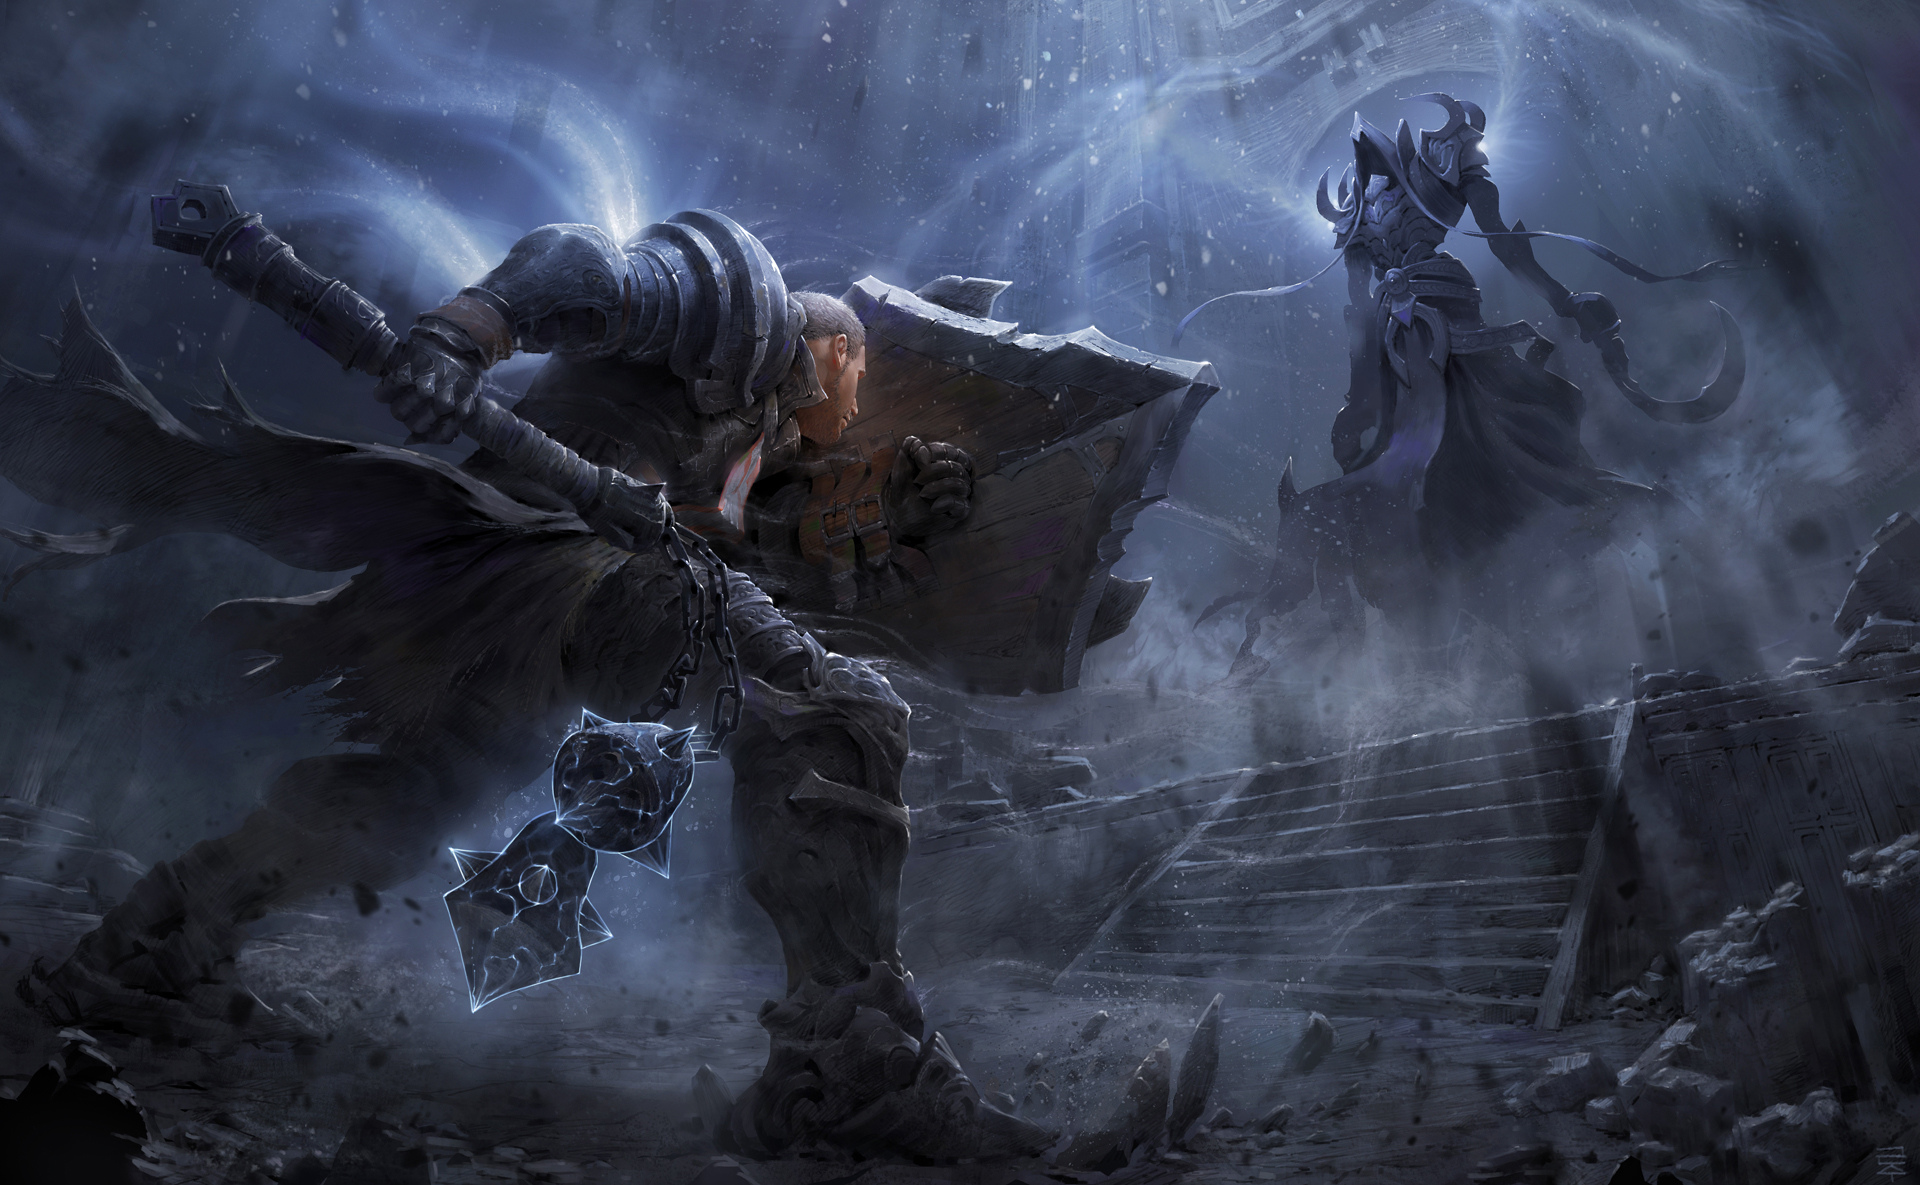 diablo3___reaper_of_souls_fan_art_by_geunjoo-d79ijfp